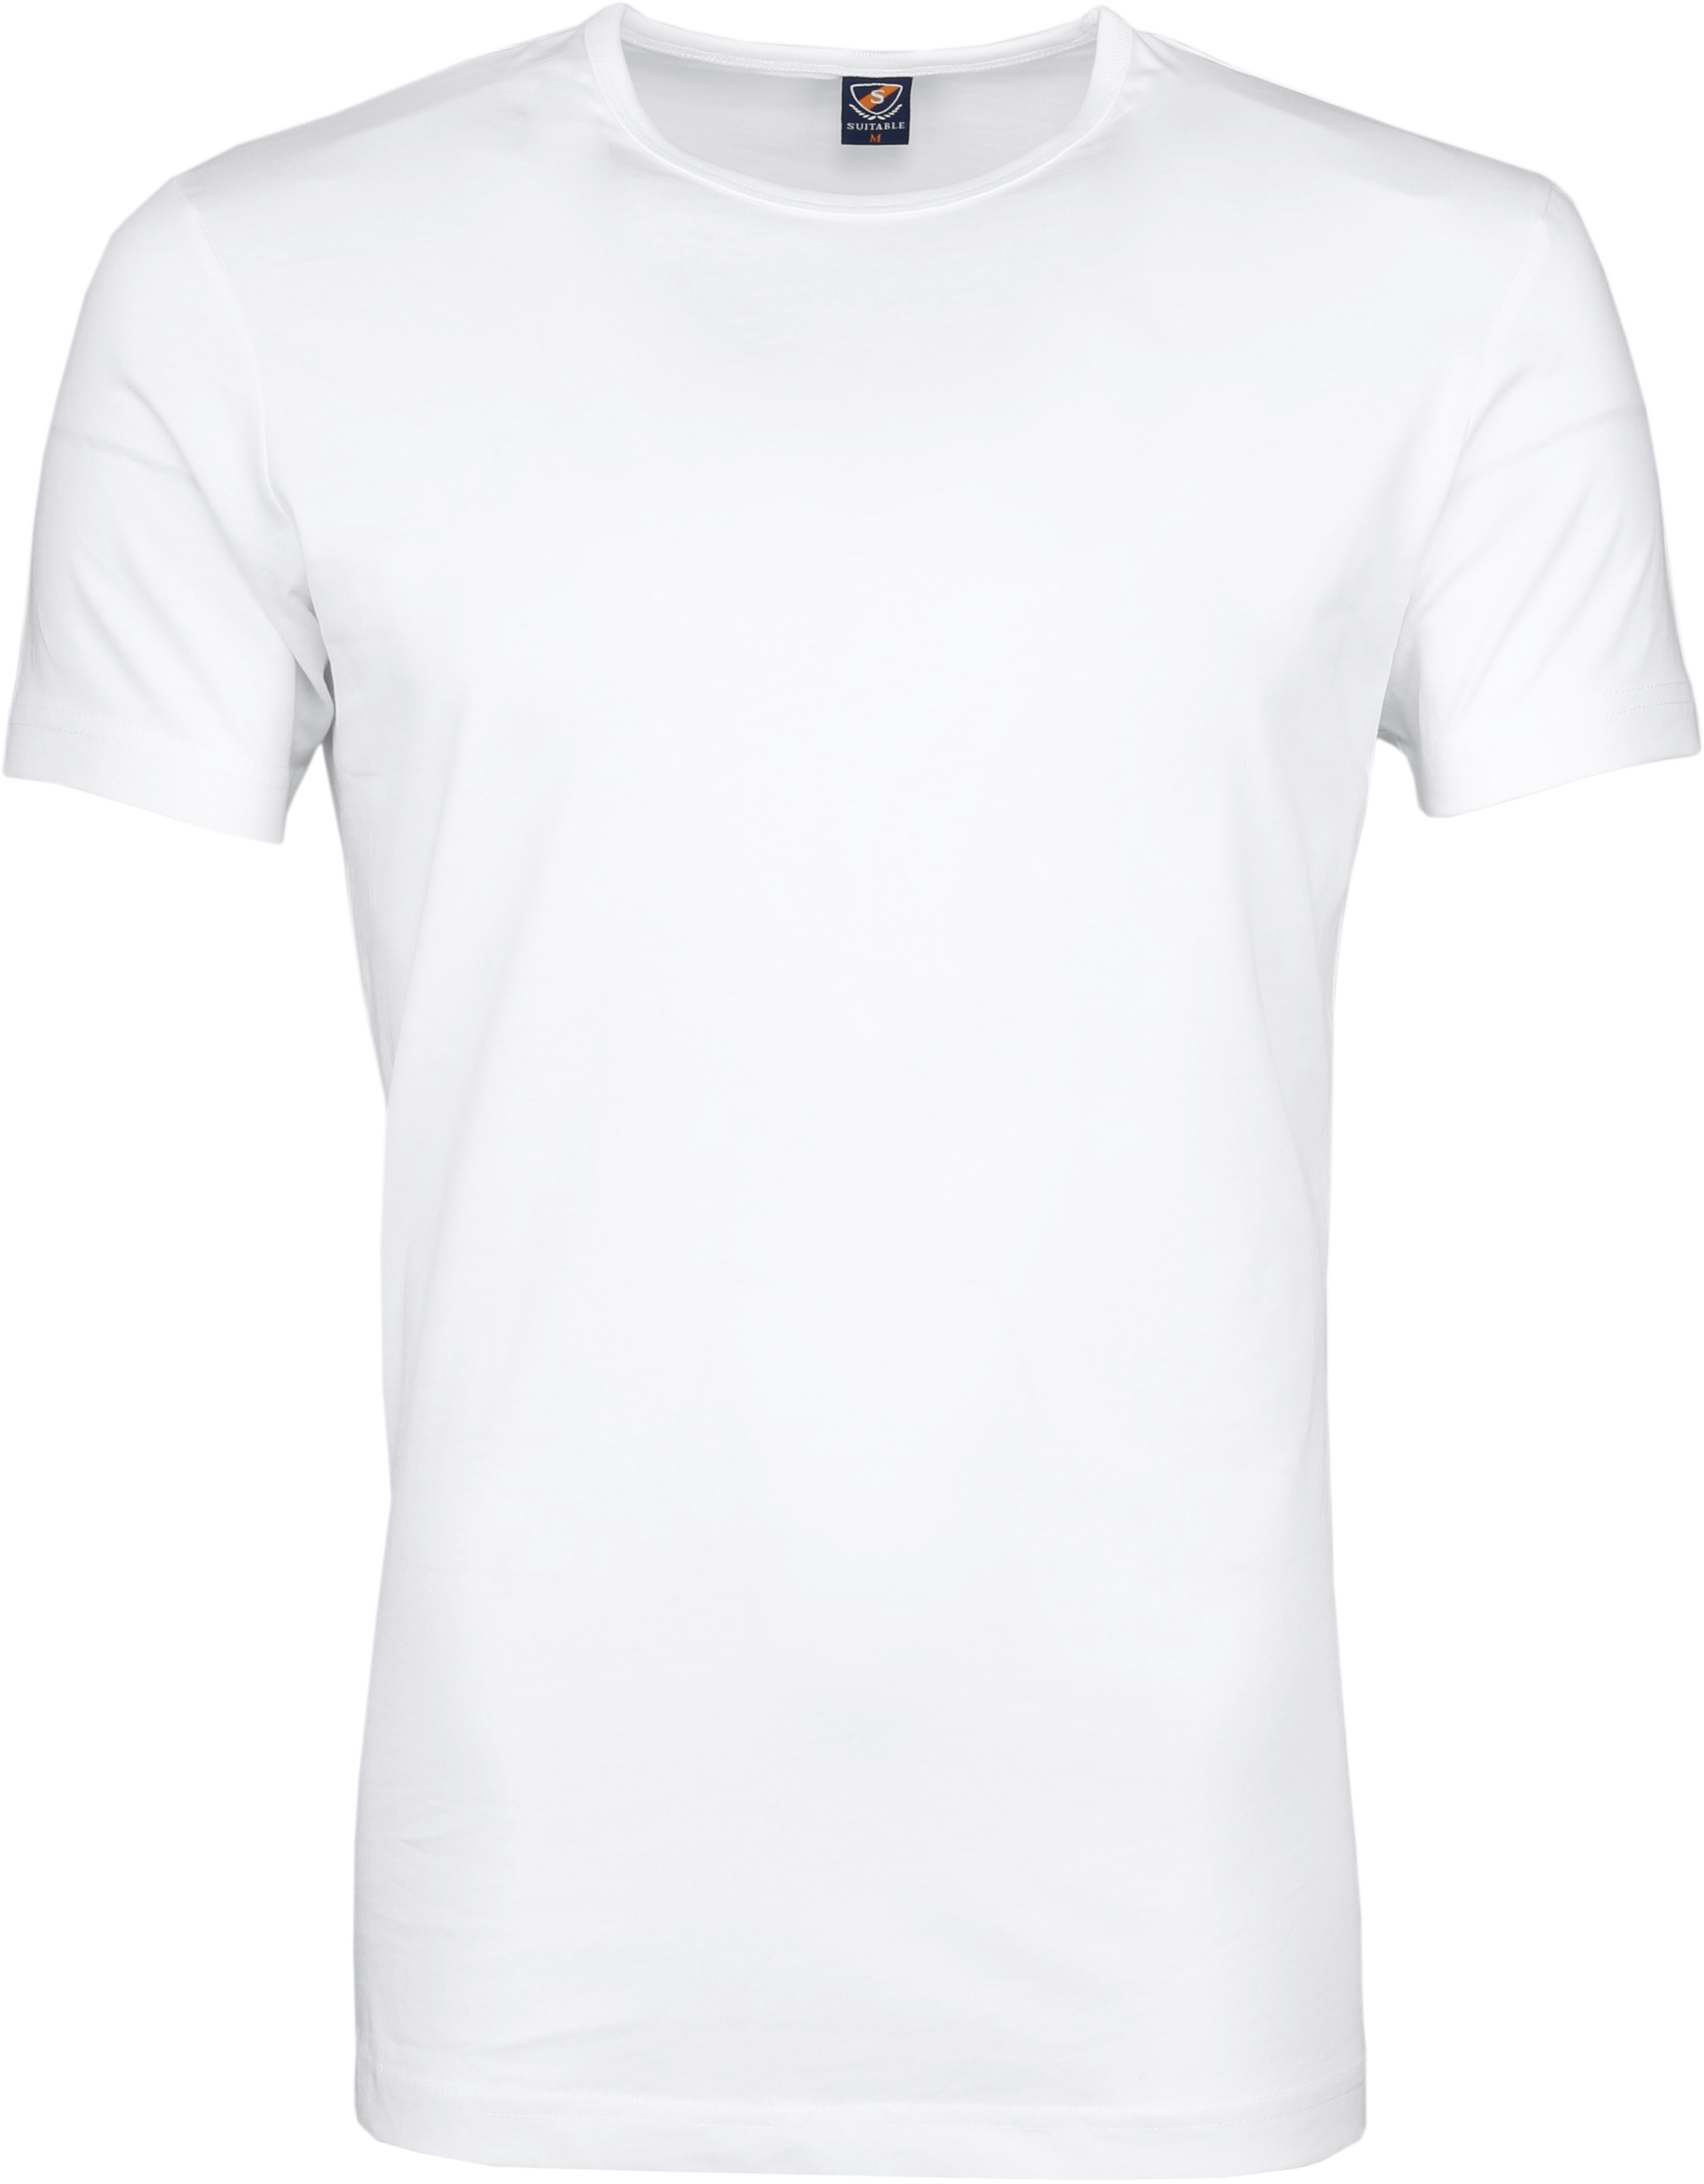 White T-shirt O-Neck 6-Pack foto 1